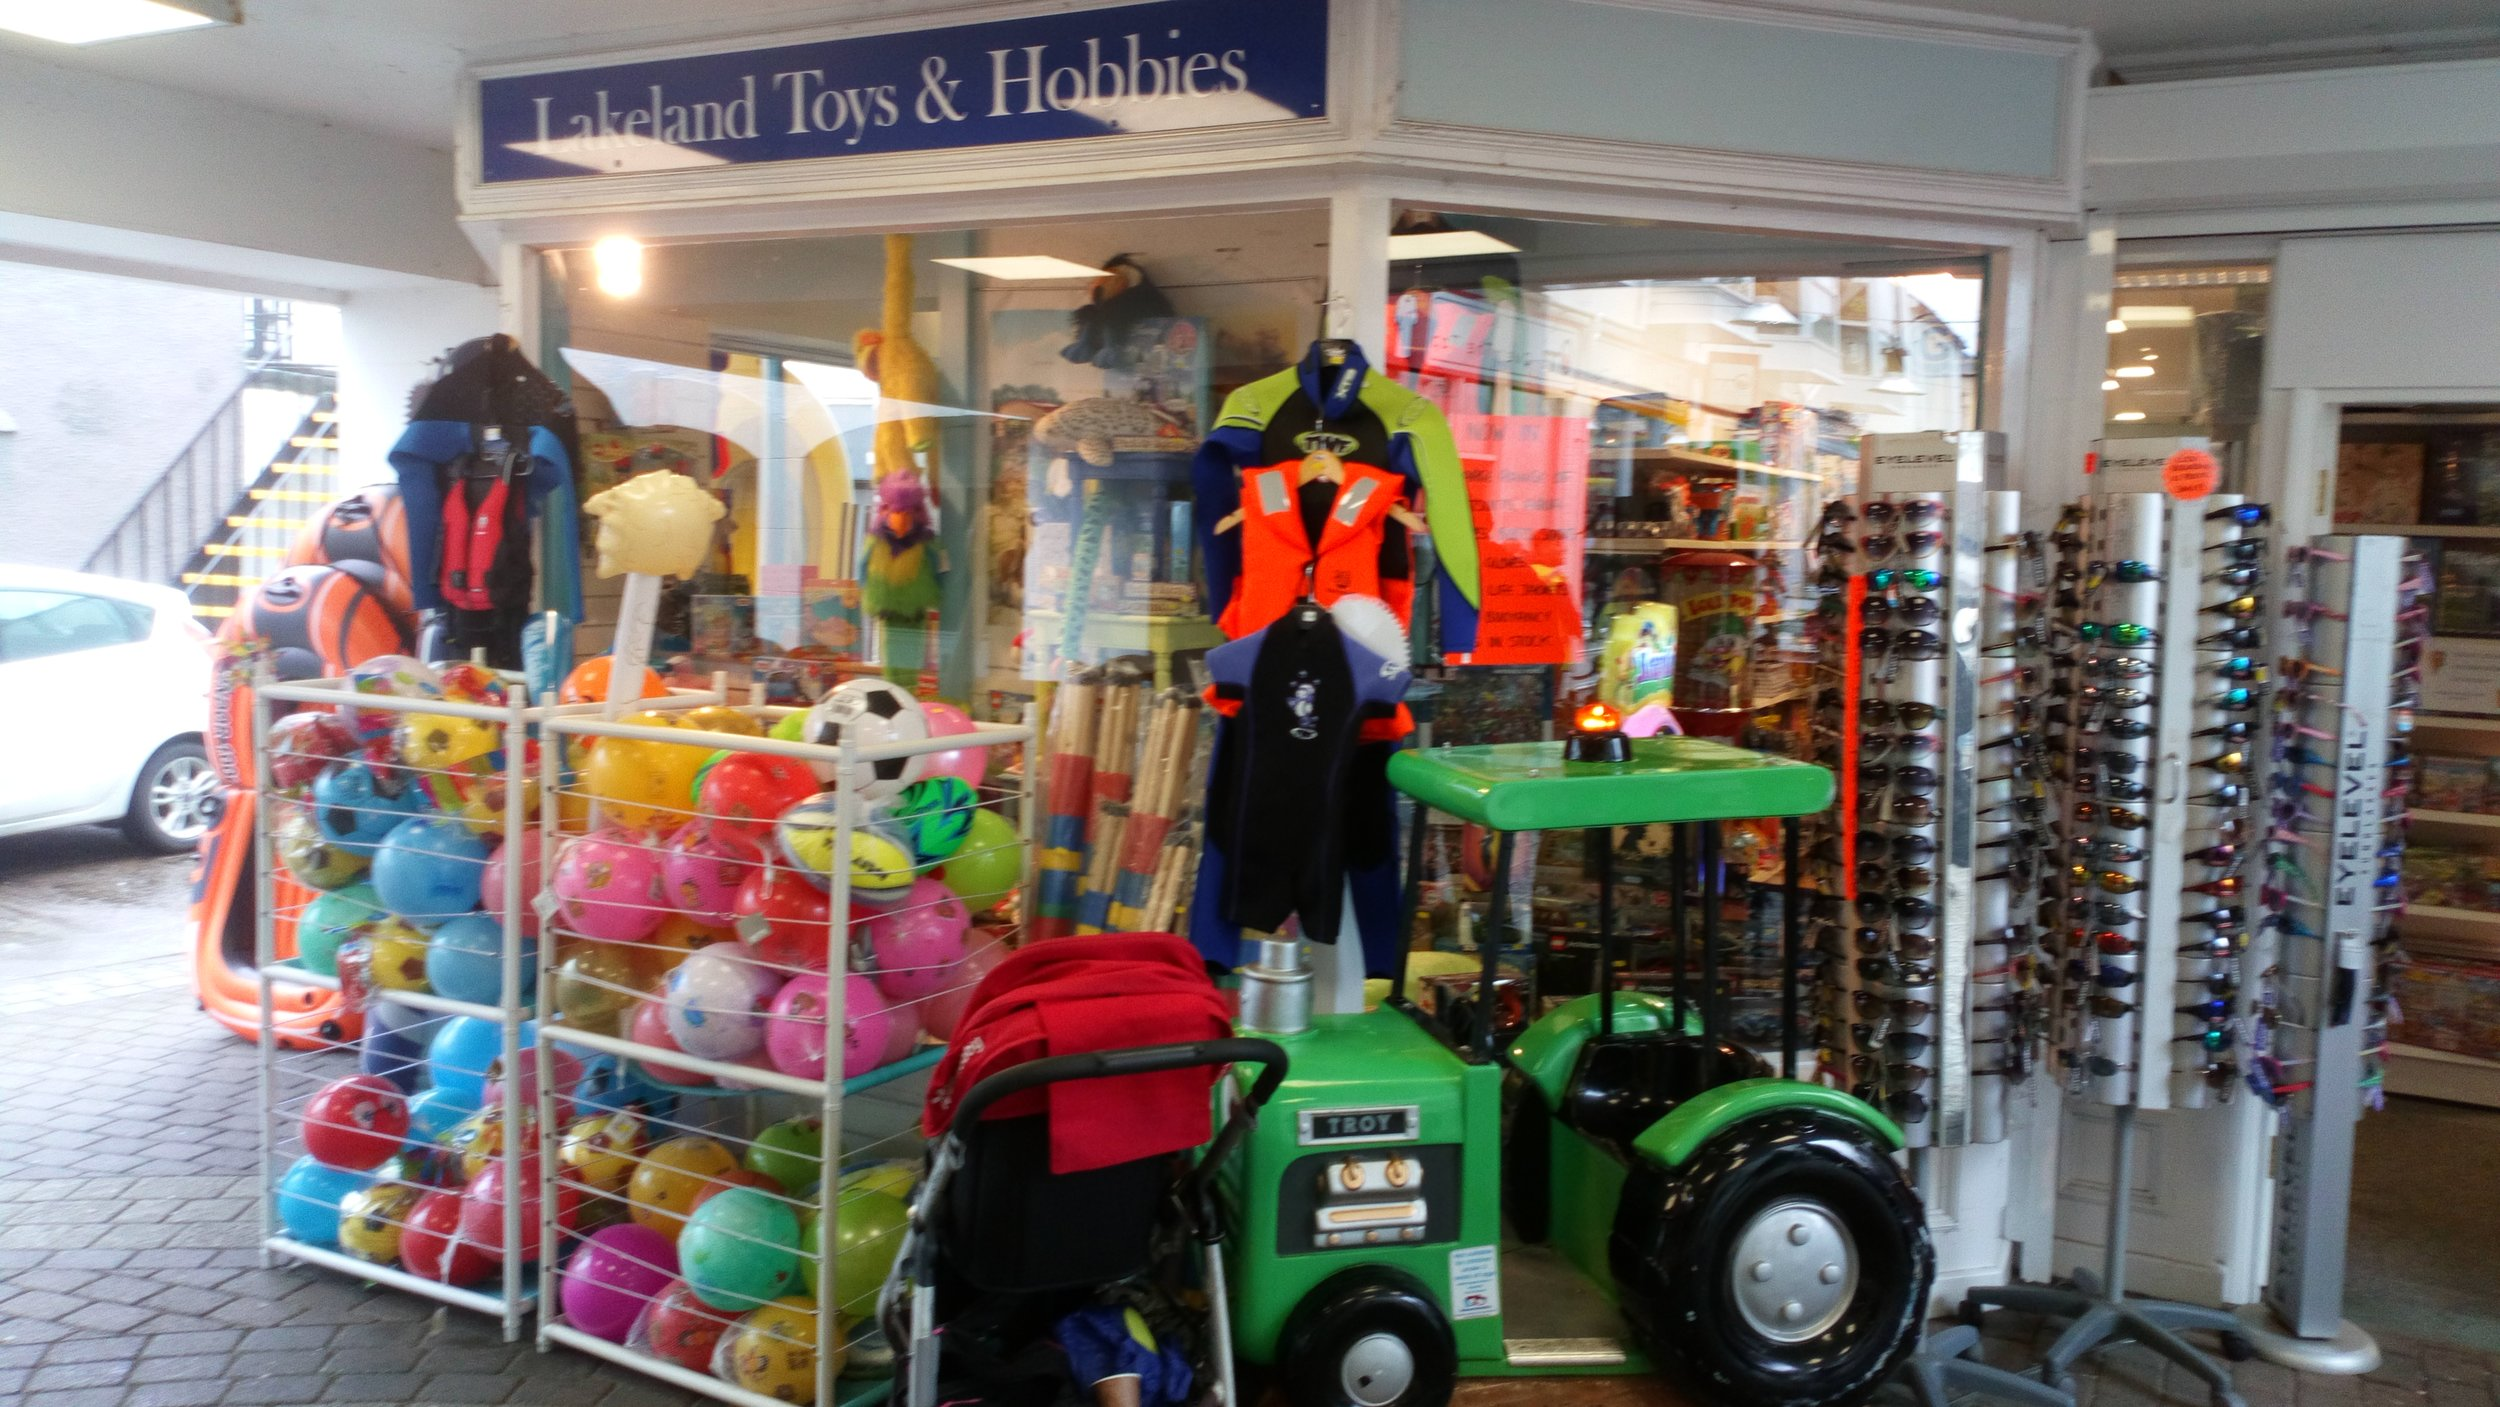 Lakeland Toys    Lakeland Toys and Hobbies specialise in toys and games to satisfy every taste and price range. An extensive range of board and card games, Lego for every taste, building kits and children's dressing up outfits, to sports and outdoor play equipment, we have something for every interest. Alongside our range of new clearance shooting and hunting clothing from brands such as Deerhunter, Ridgeline, Seeland, Jack Pyke, Percussion and more. Our shop is well worth a visit as you wander around the streets of one of the country's most famous tourist venues enjoying your holidays.  10 Museum Place, Keswick, CA12 5DZ  017687 75275